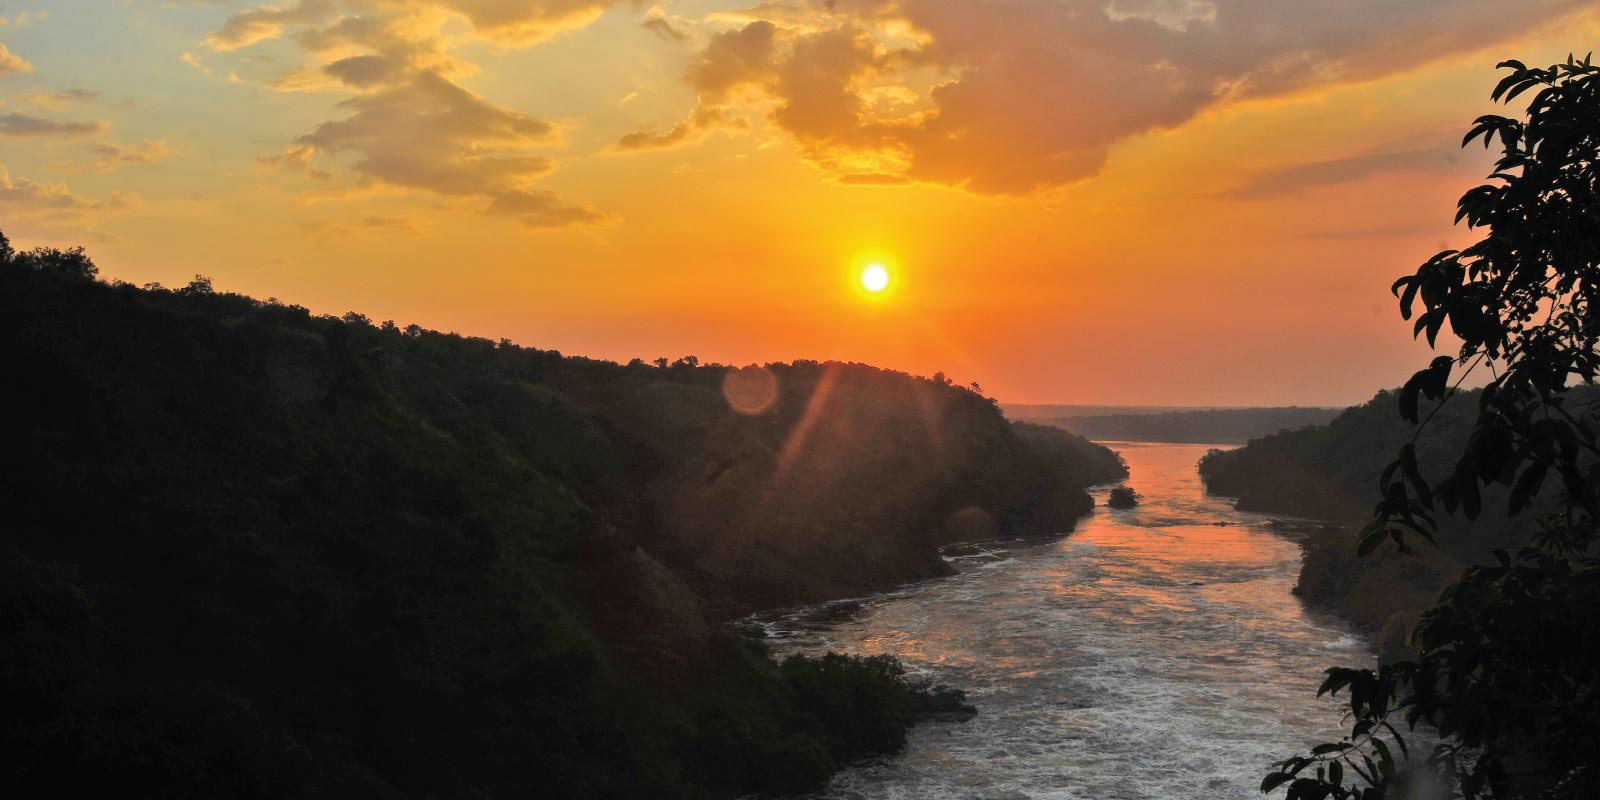 Sunset on Nile River at Murchison Fall - Wild Discoveries Safaris Uganda